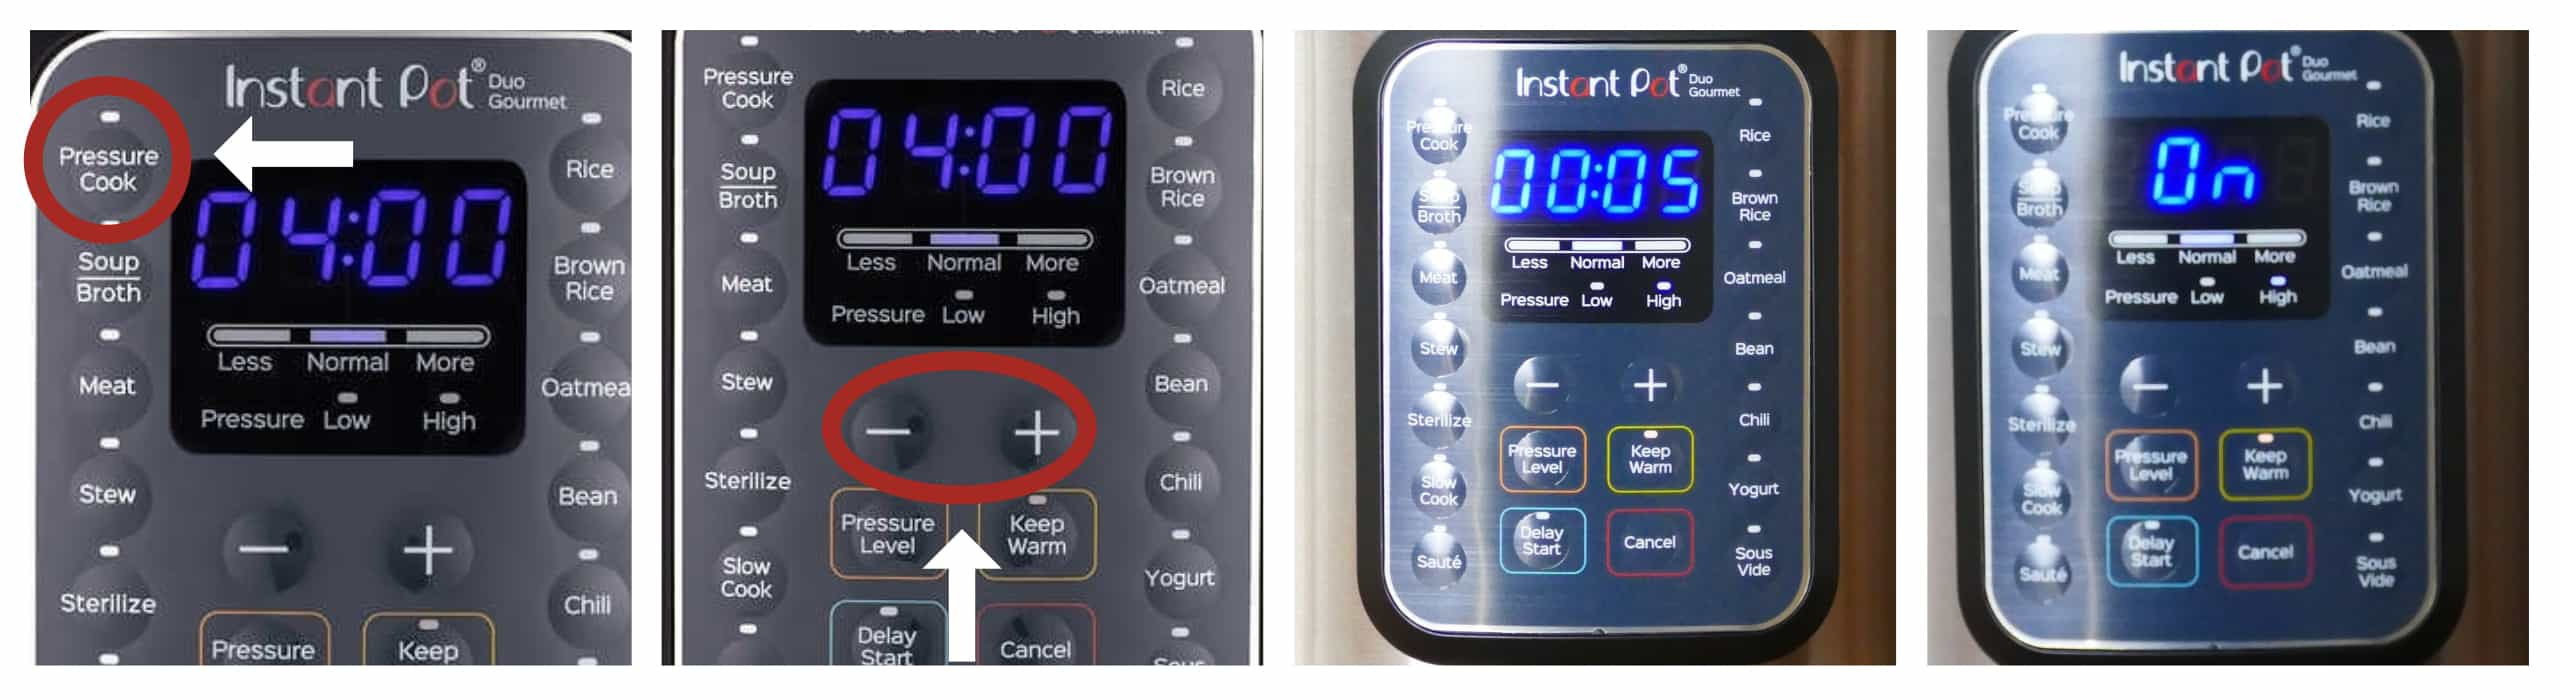 Instant Pot Duo Gourmet Water Test - press Pressure Cook, plus or minus, display changes to 00:05, then to On